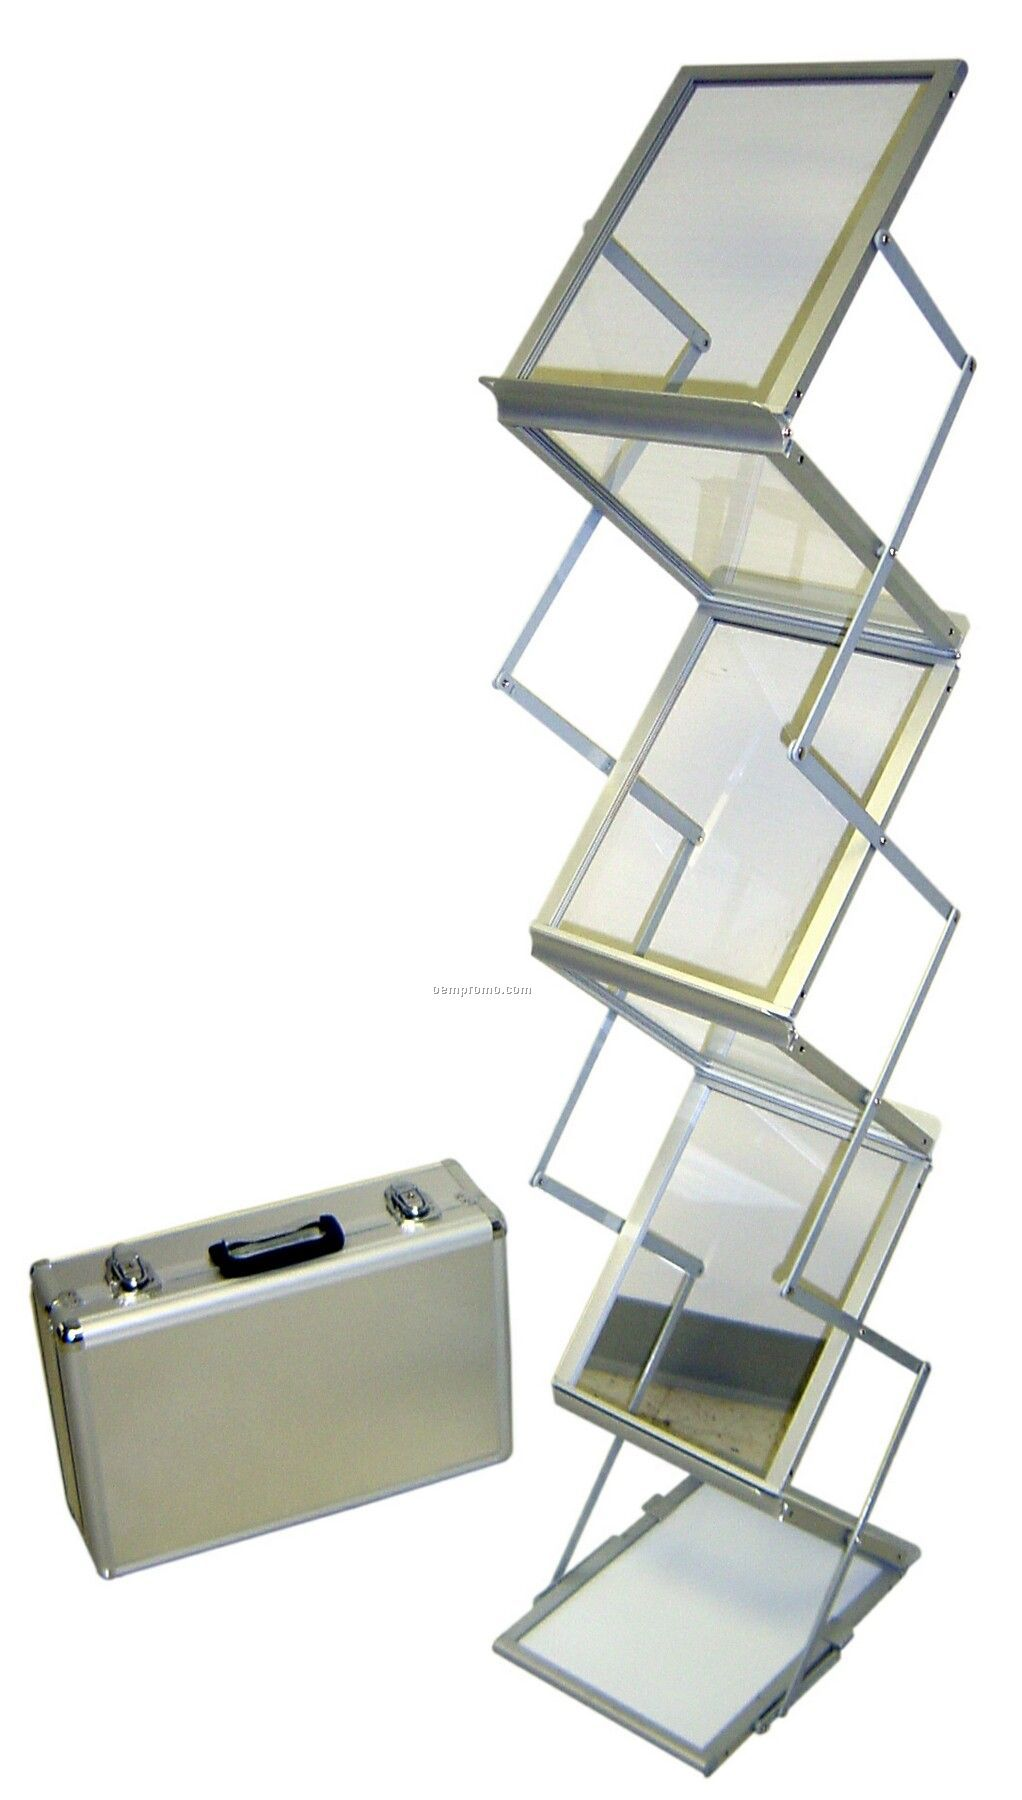 Double-sided Accordion Design Literature Holder